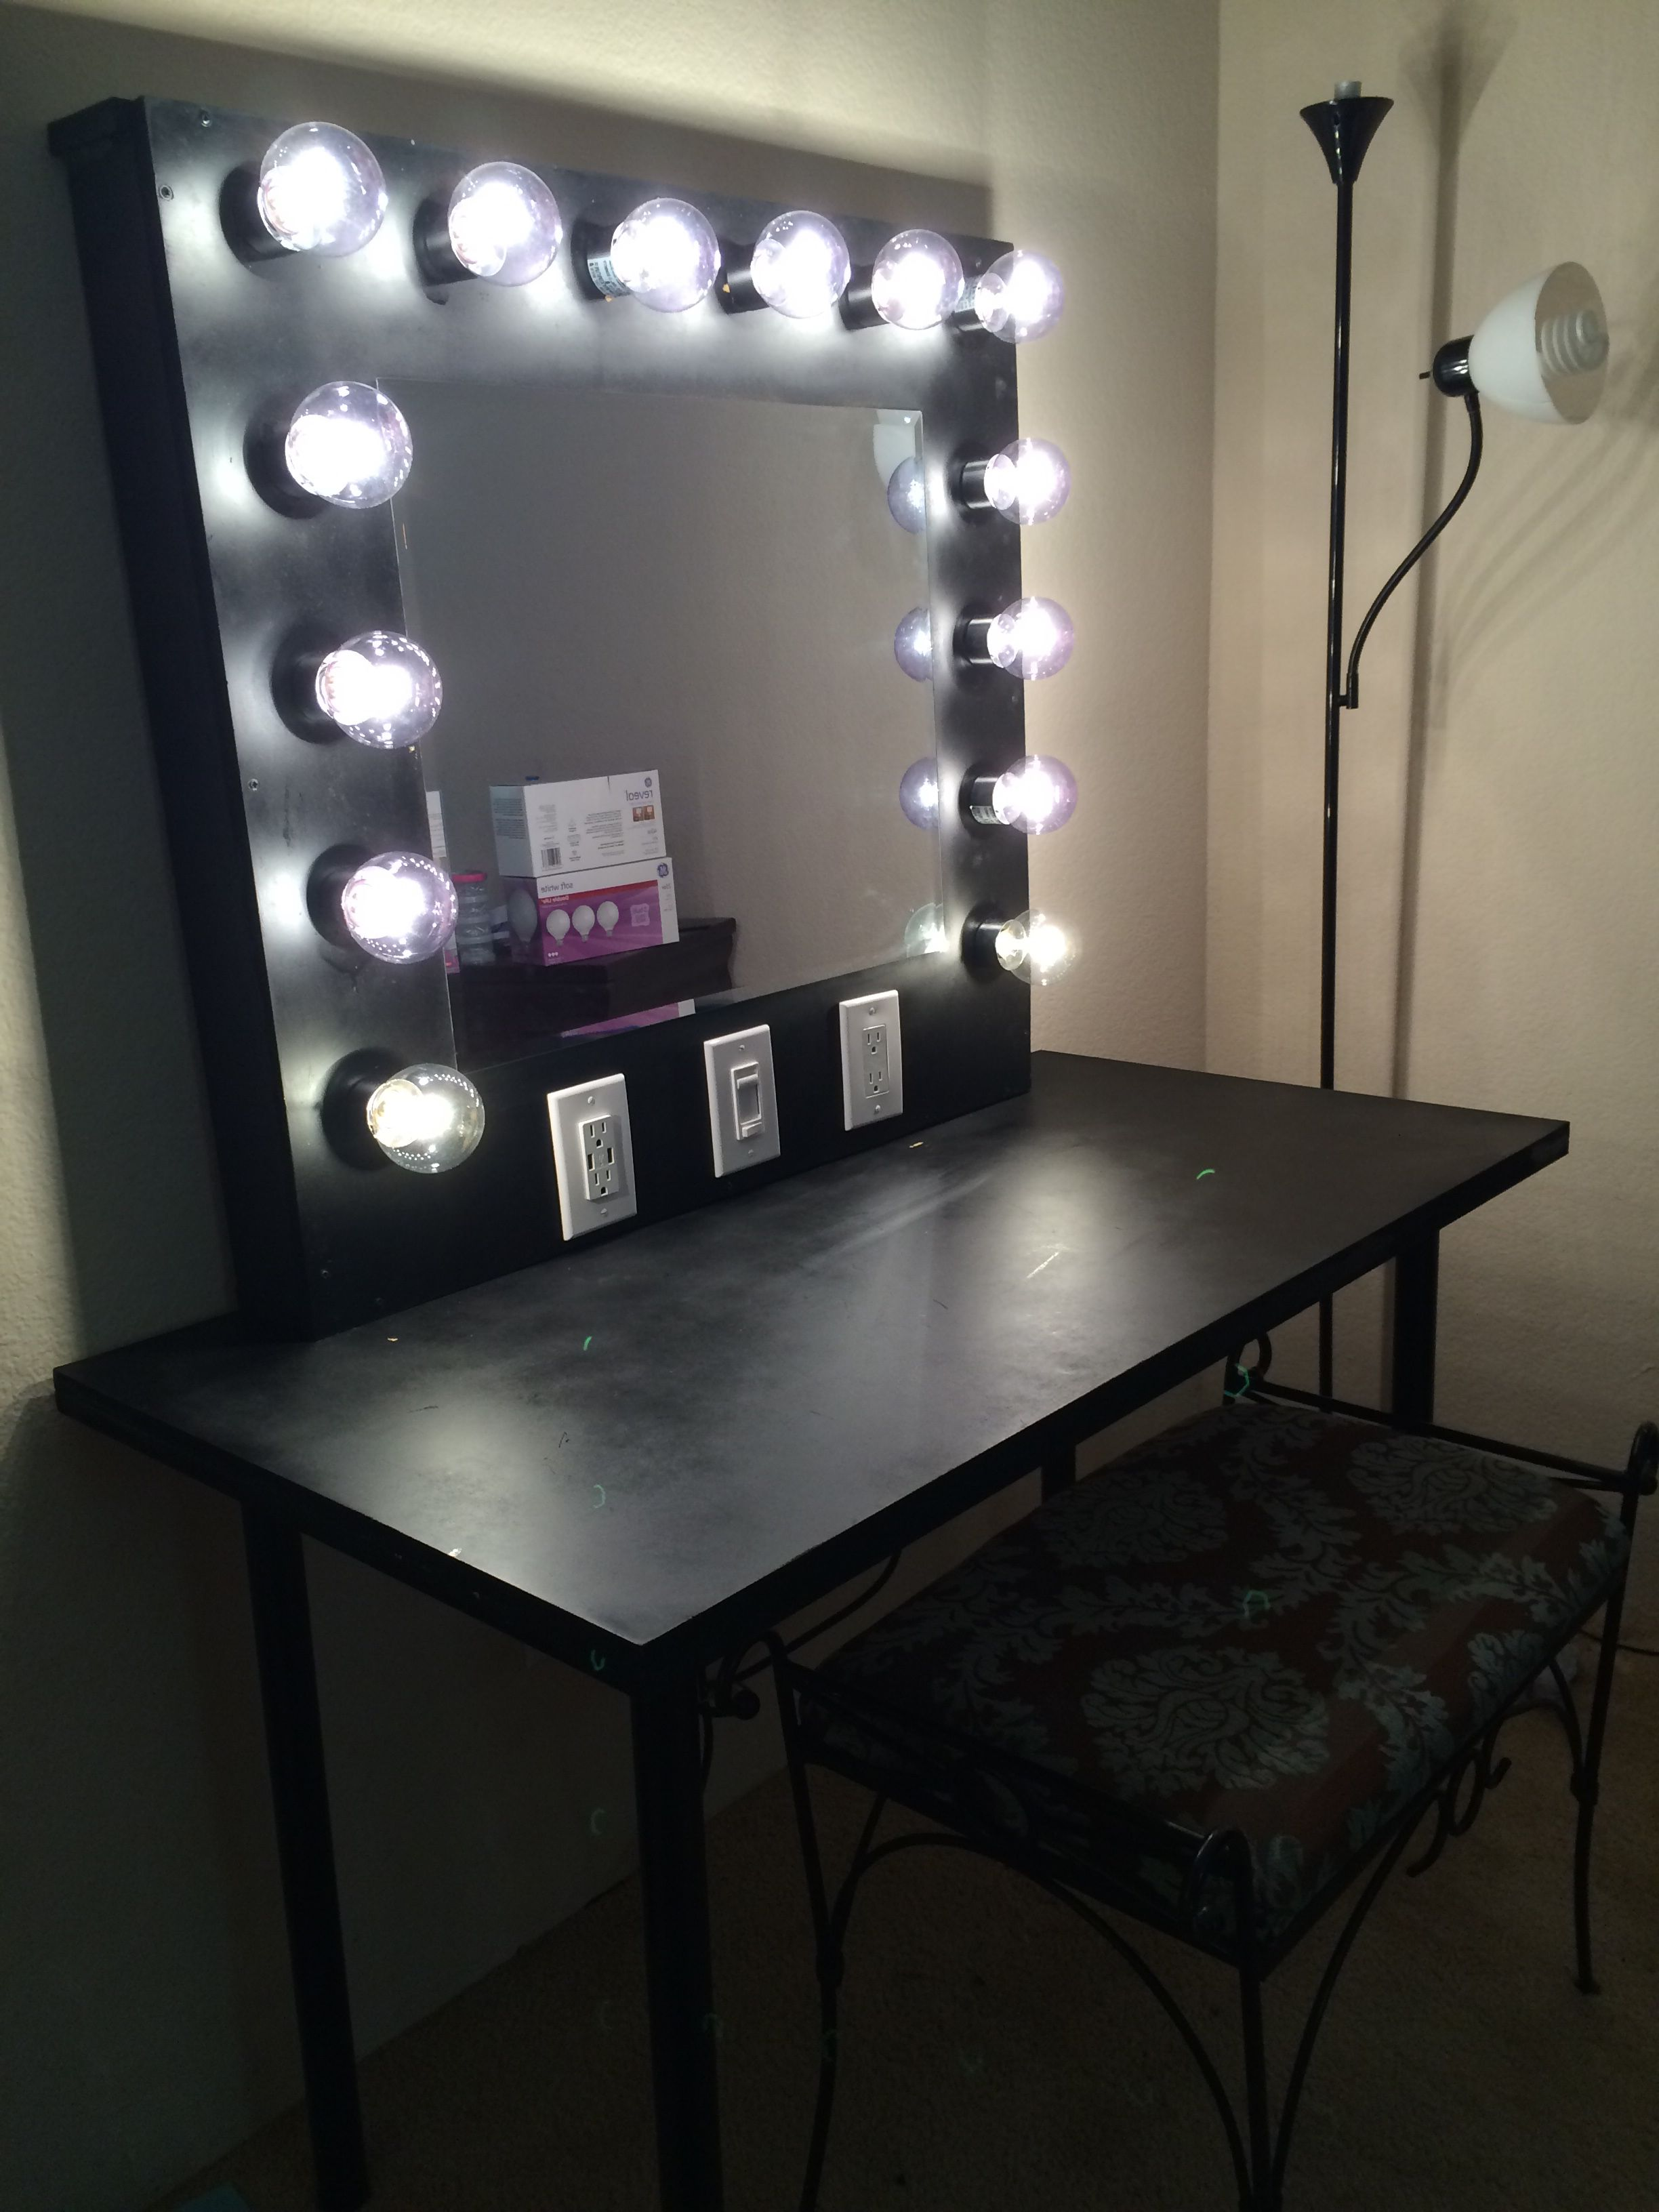 17 diy vanity mirror ideas to make your room more for Espejo tocador con luz